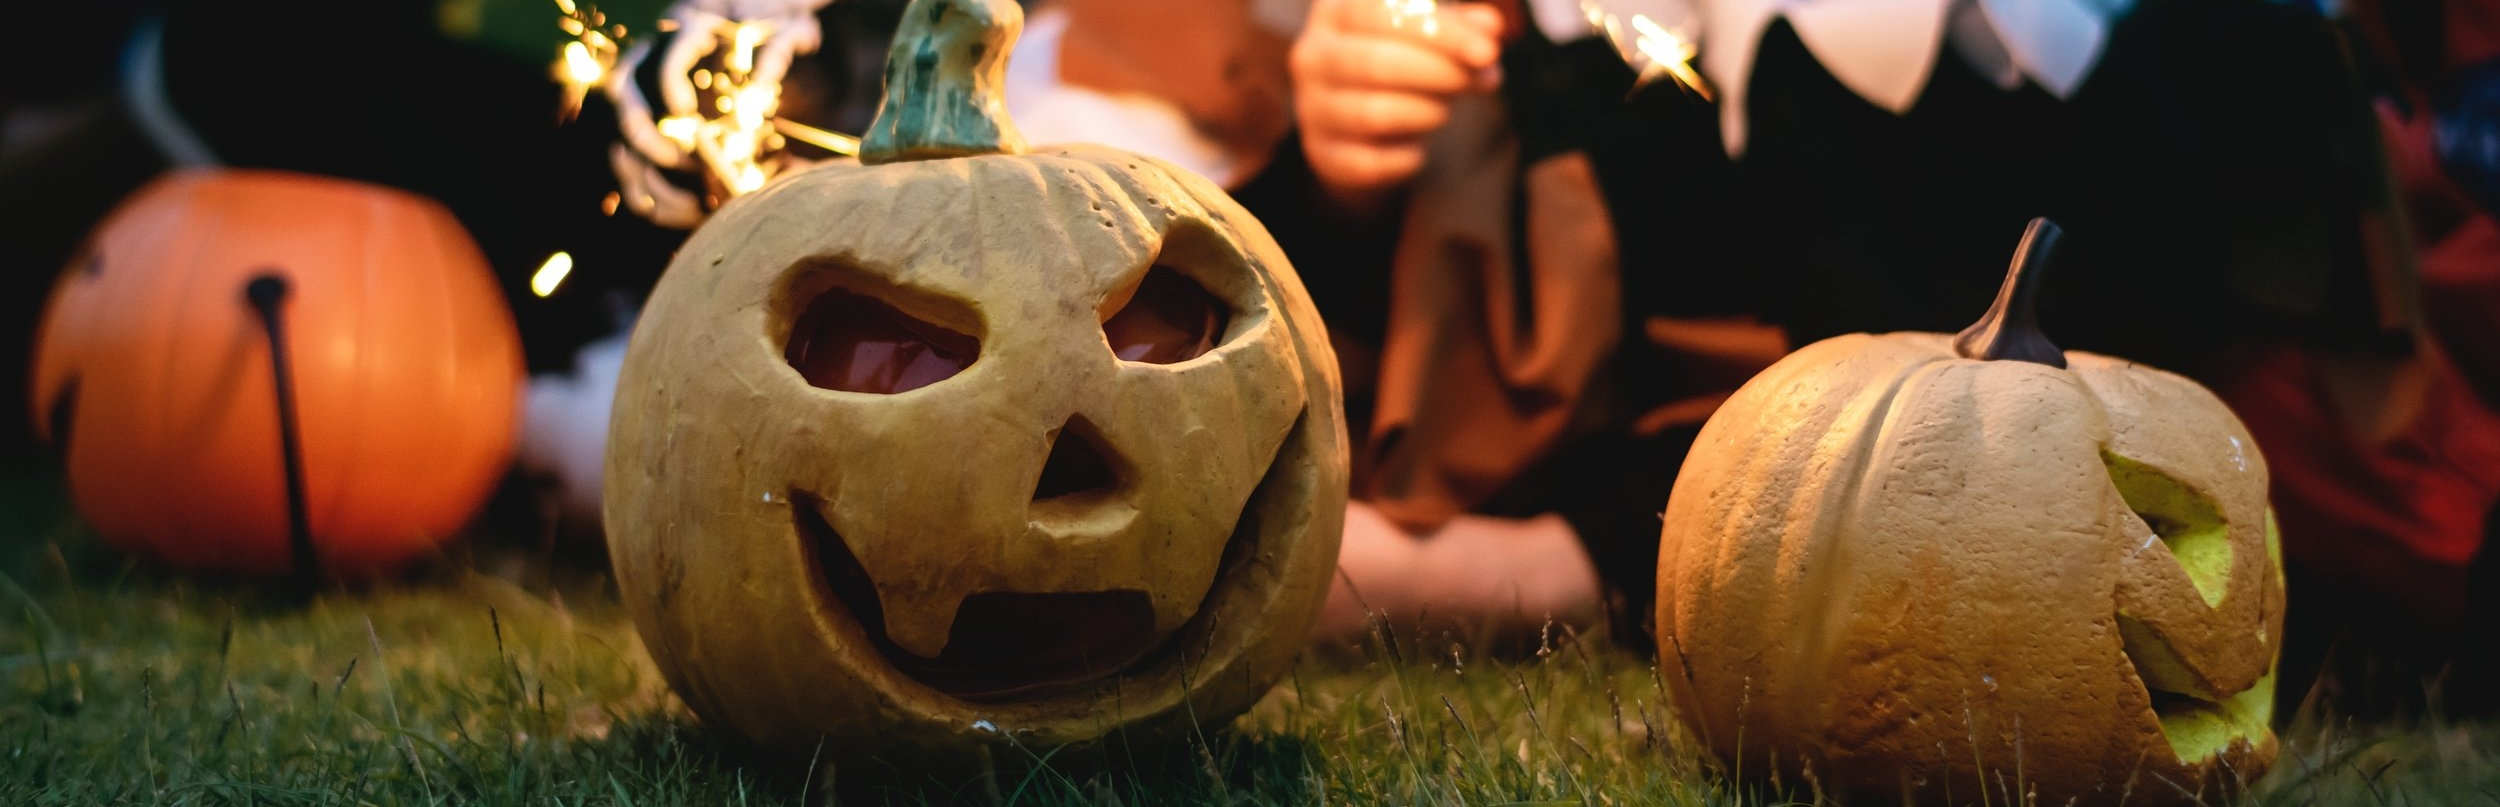 Keeping Our Little Ghosts, Goblins, Pumpkins, & Witches Safe on Halloween -